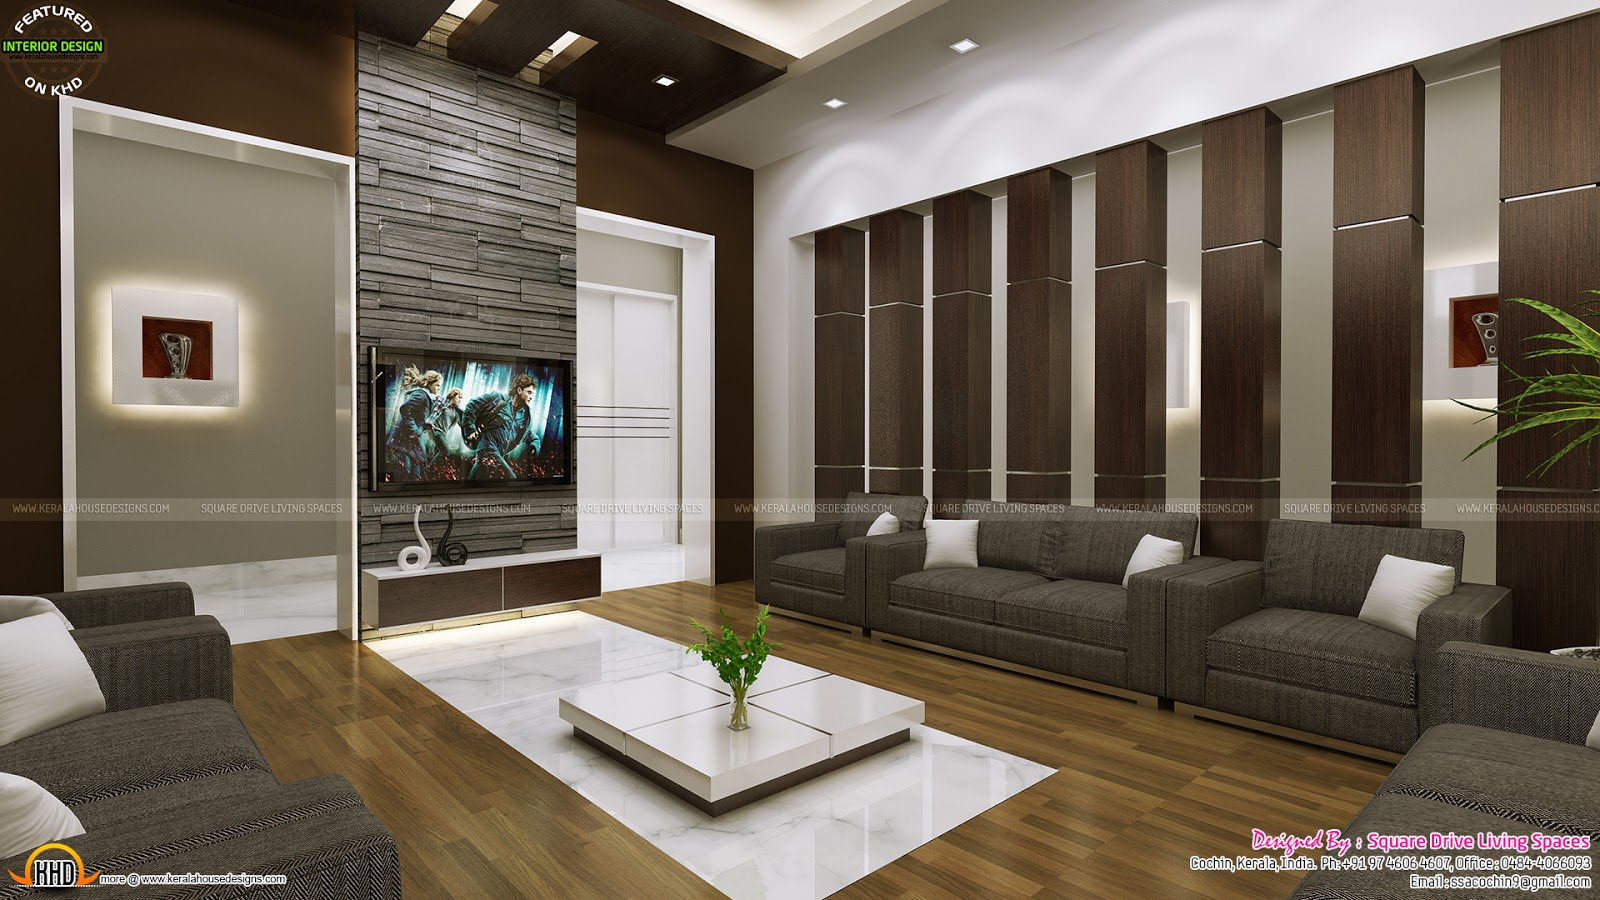 Attractive home interior ideas kerala home design and for Interior designs in kerala